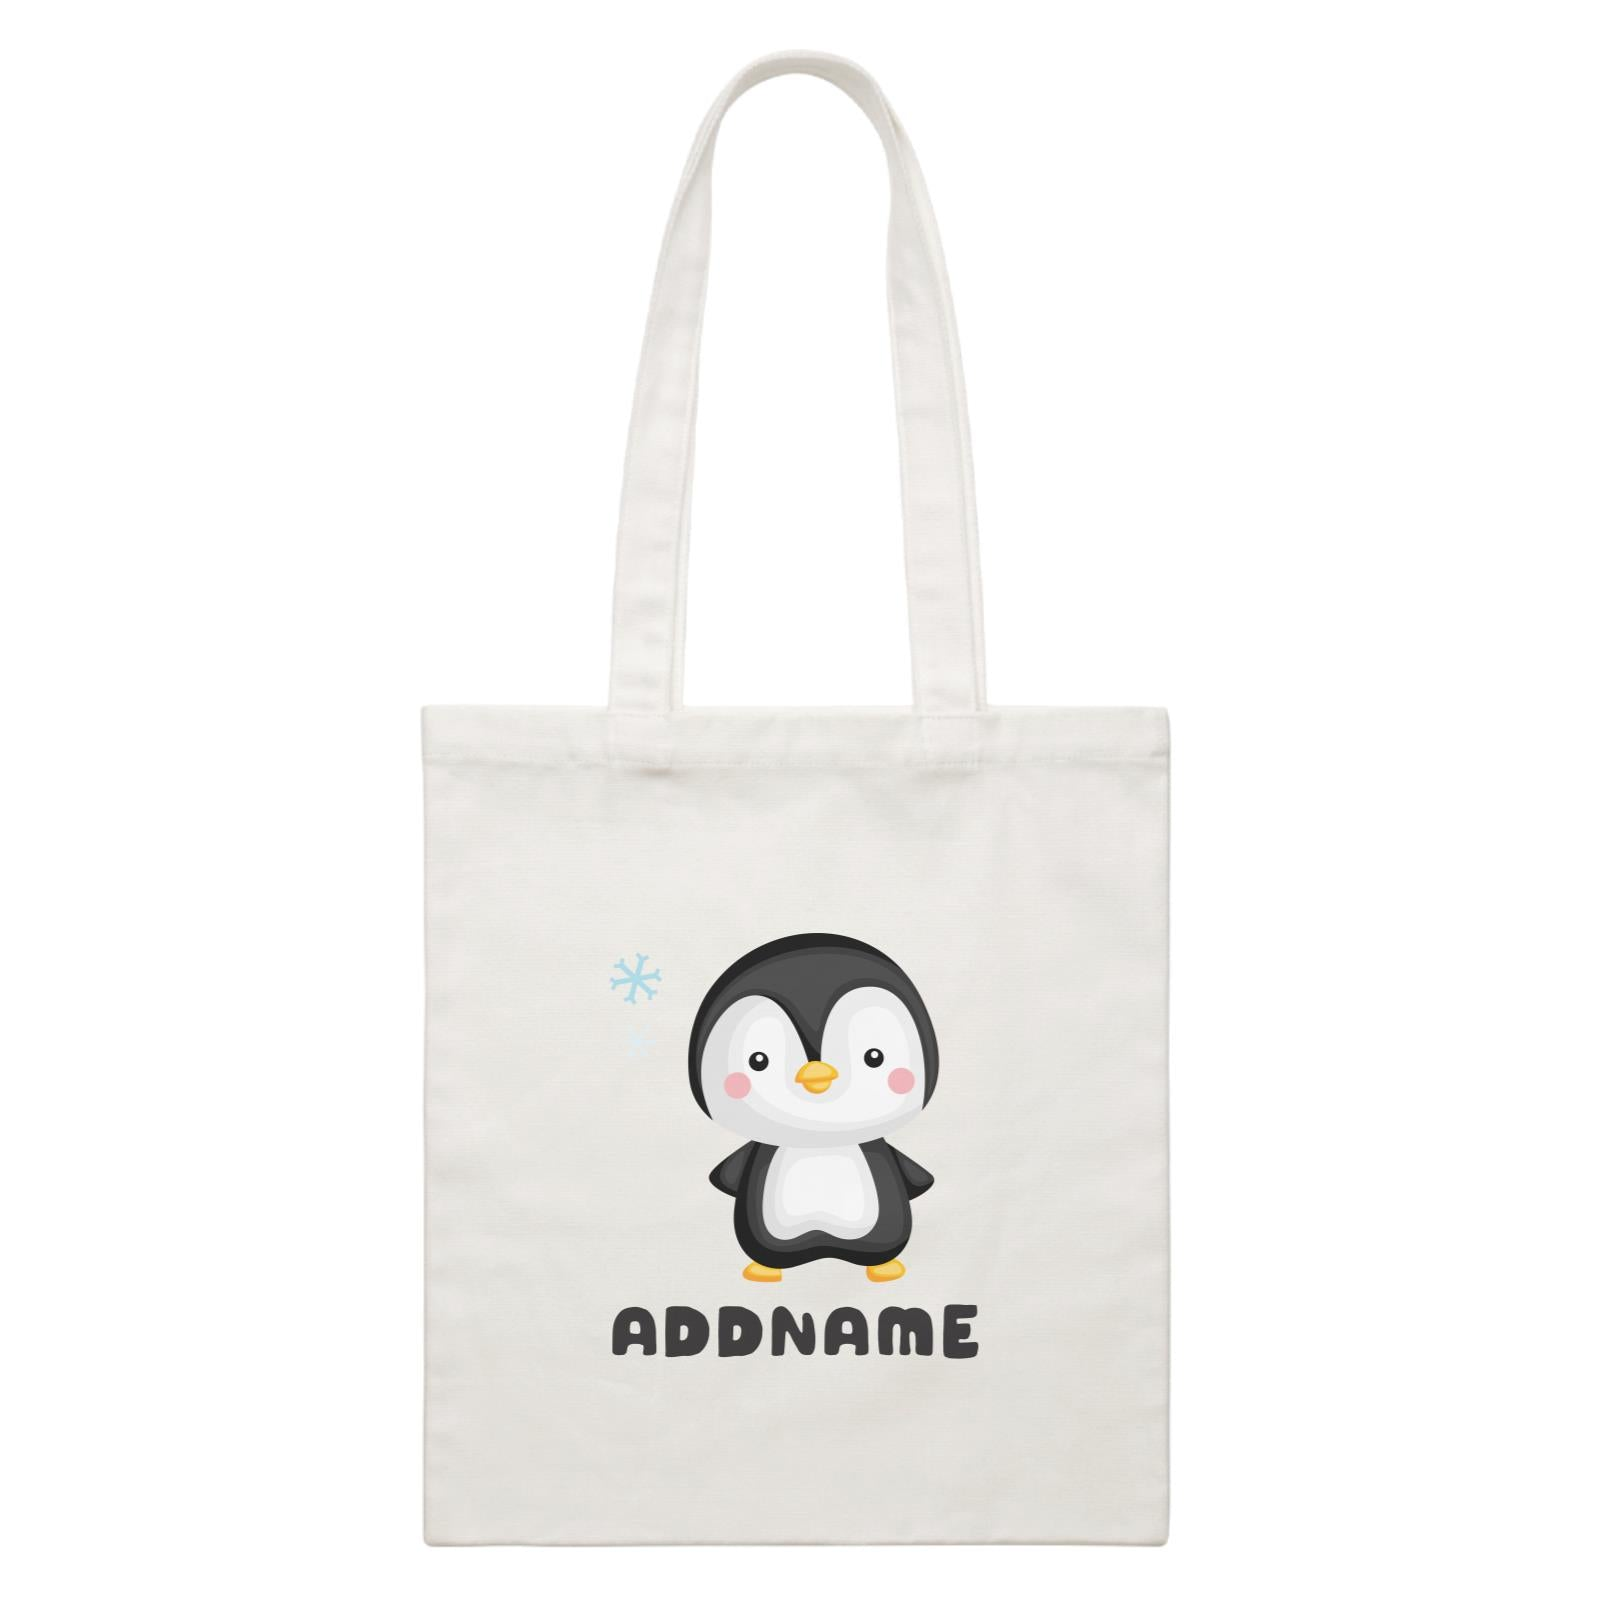 Birthday Winter Animals Small Penguin Addname White Canvas Bag